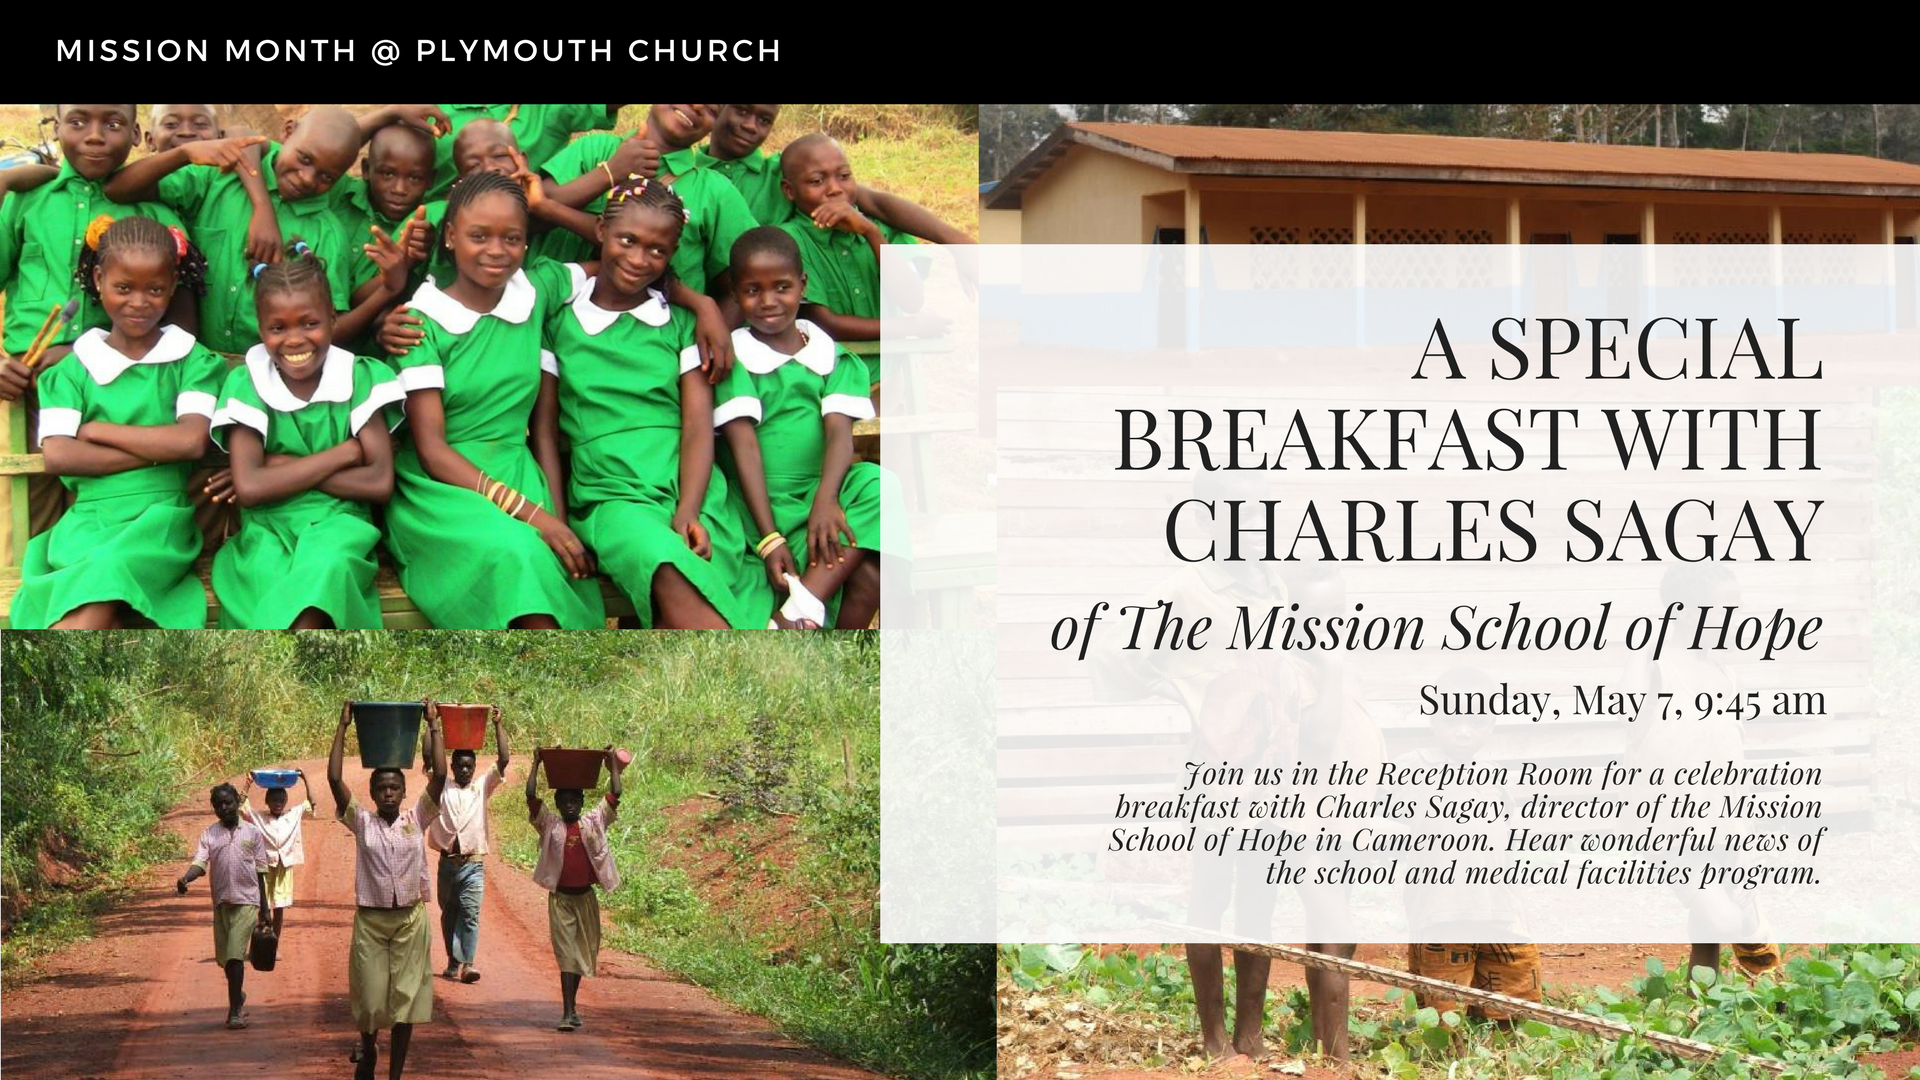 THE MISSION SCHOOL OF HOPE - SUNDAY, MAY 7, 9:45 AMWe welcome Rev. Charles Sagay from the Mission School of Hope in Cameroon. Join Charles for breakfast at 9:45 am and hear wonderful news of the school and madical facilities programPlymouth has been blessed with a long partnership with Charles and the school's mission to reach out to the Baka (Pygmy) Tribe.